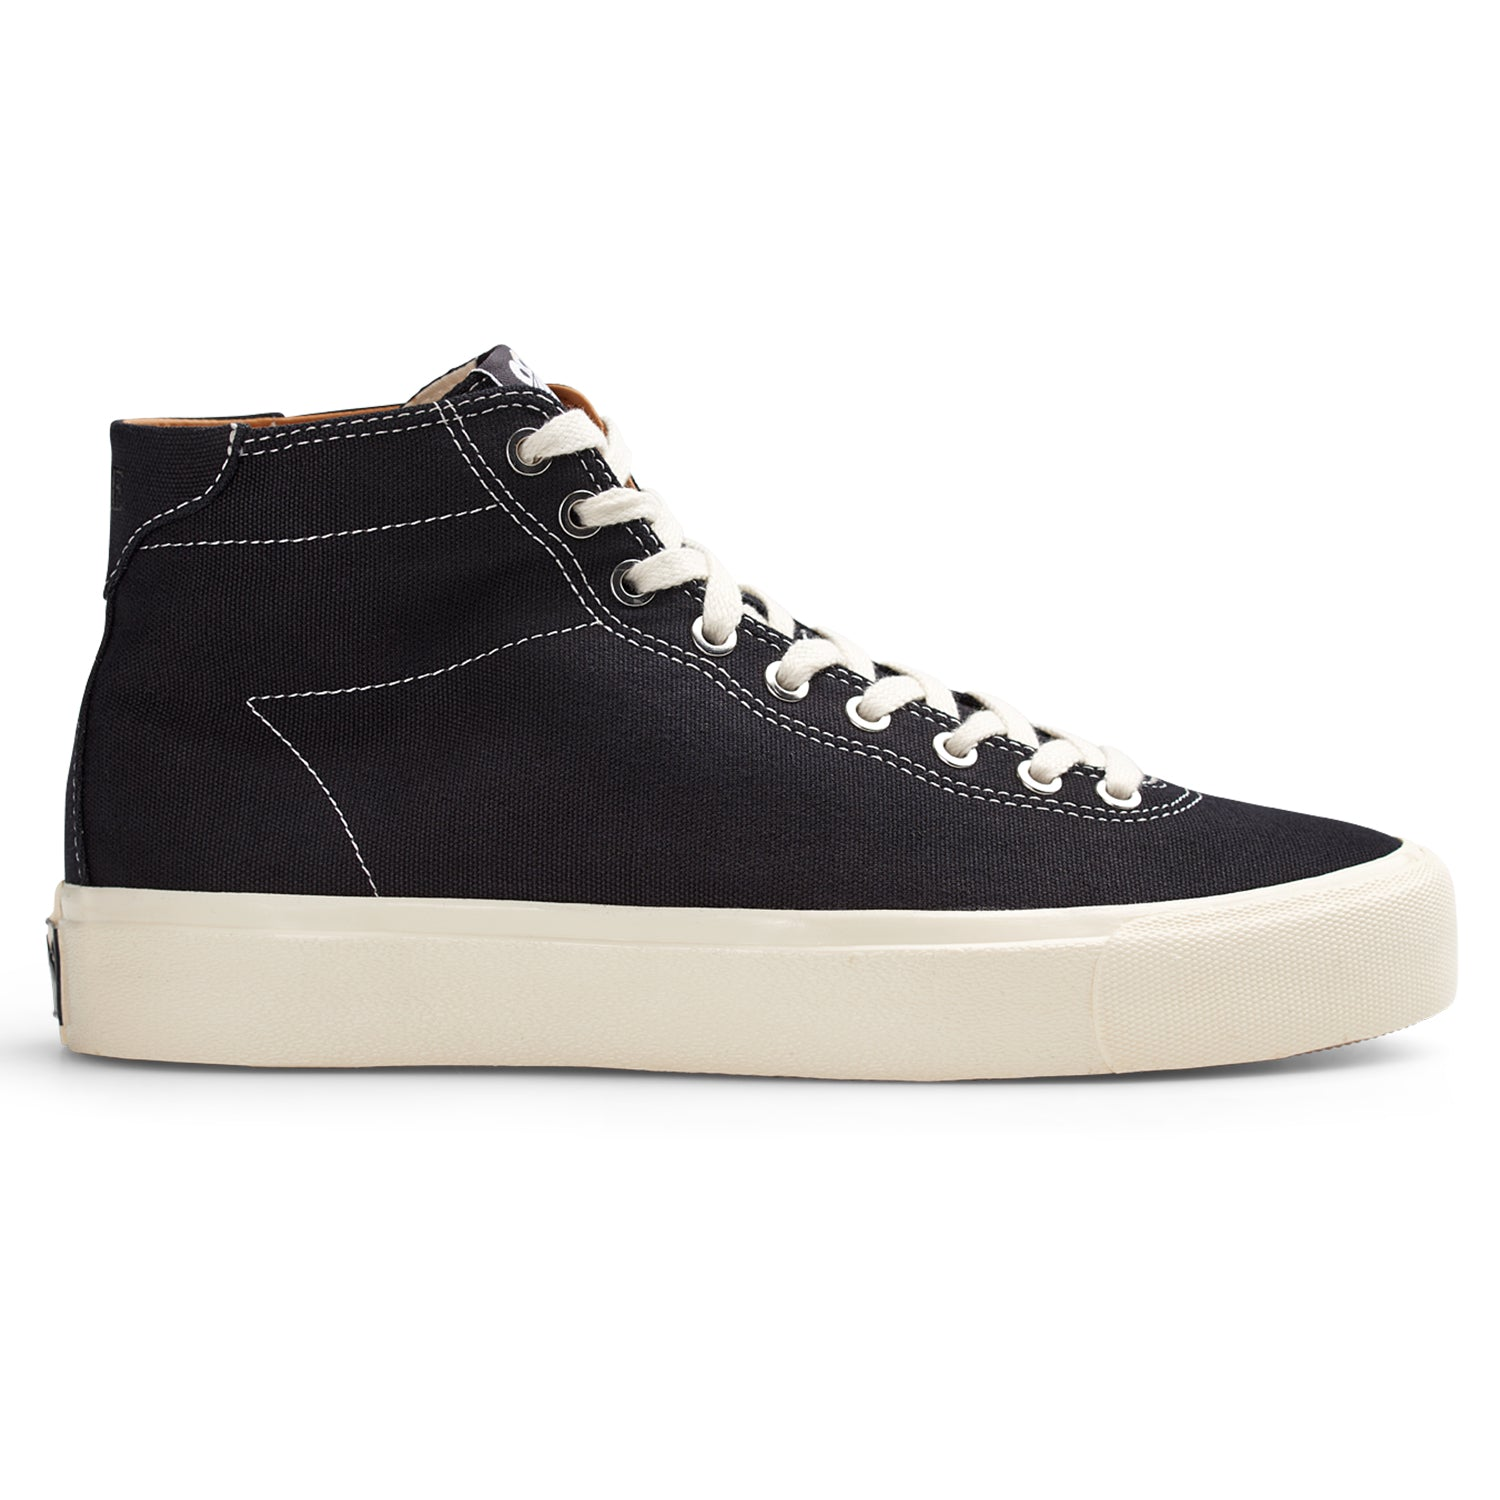 Last Resort AB VM001 Canvas Hi Black/White